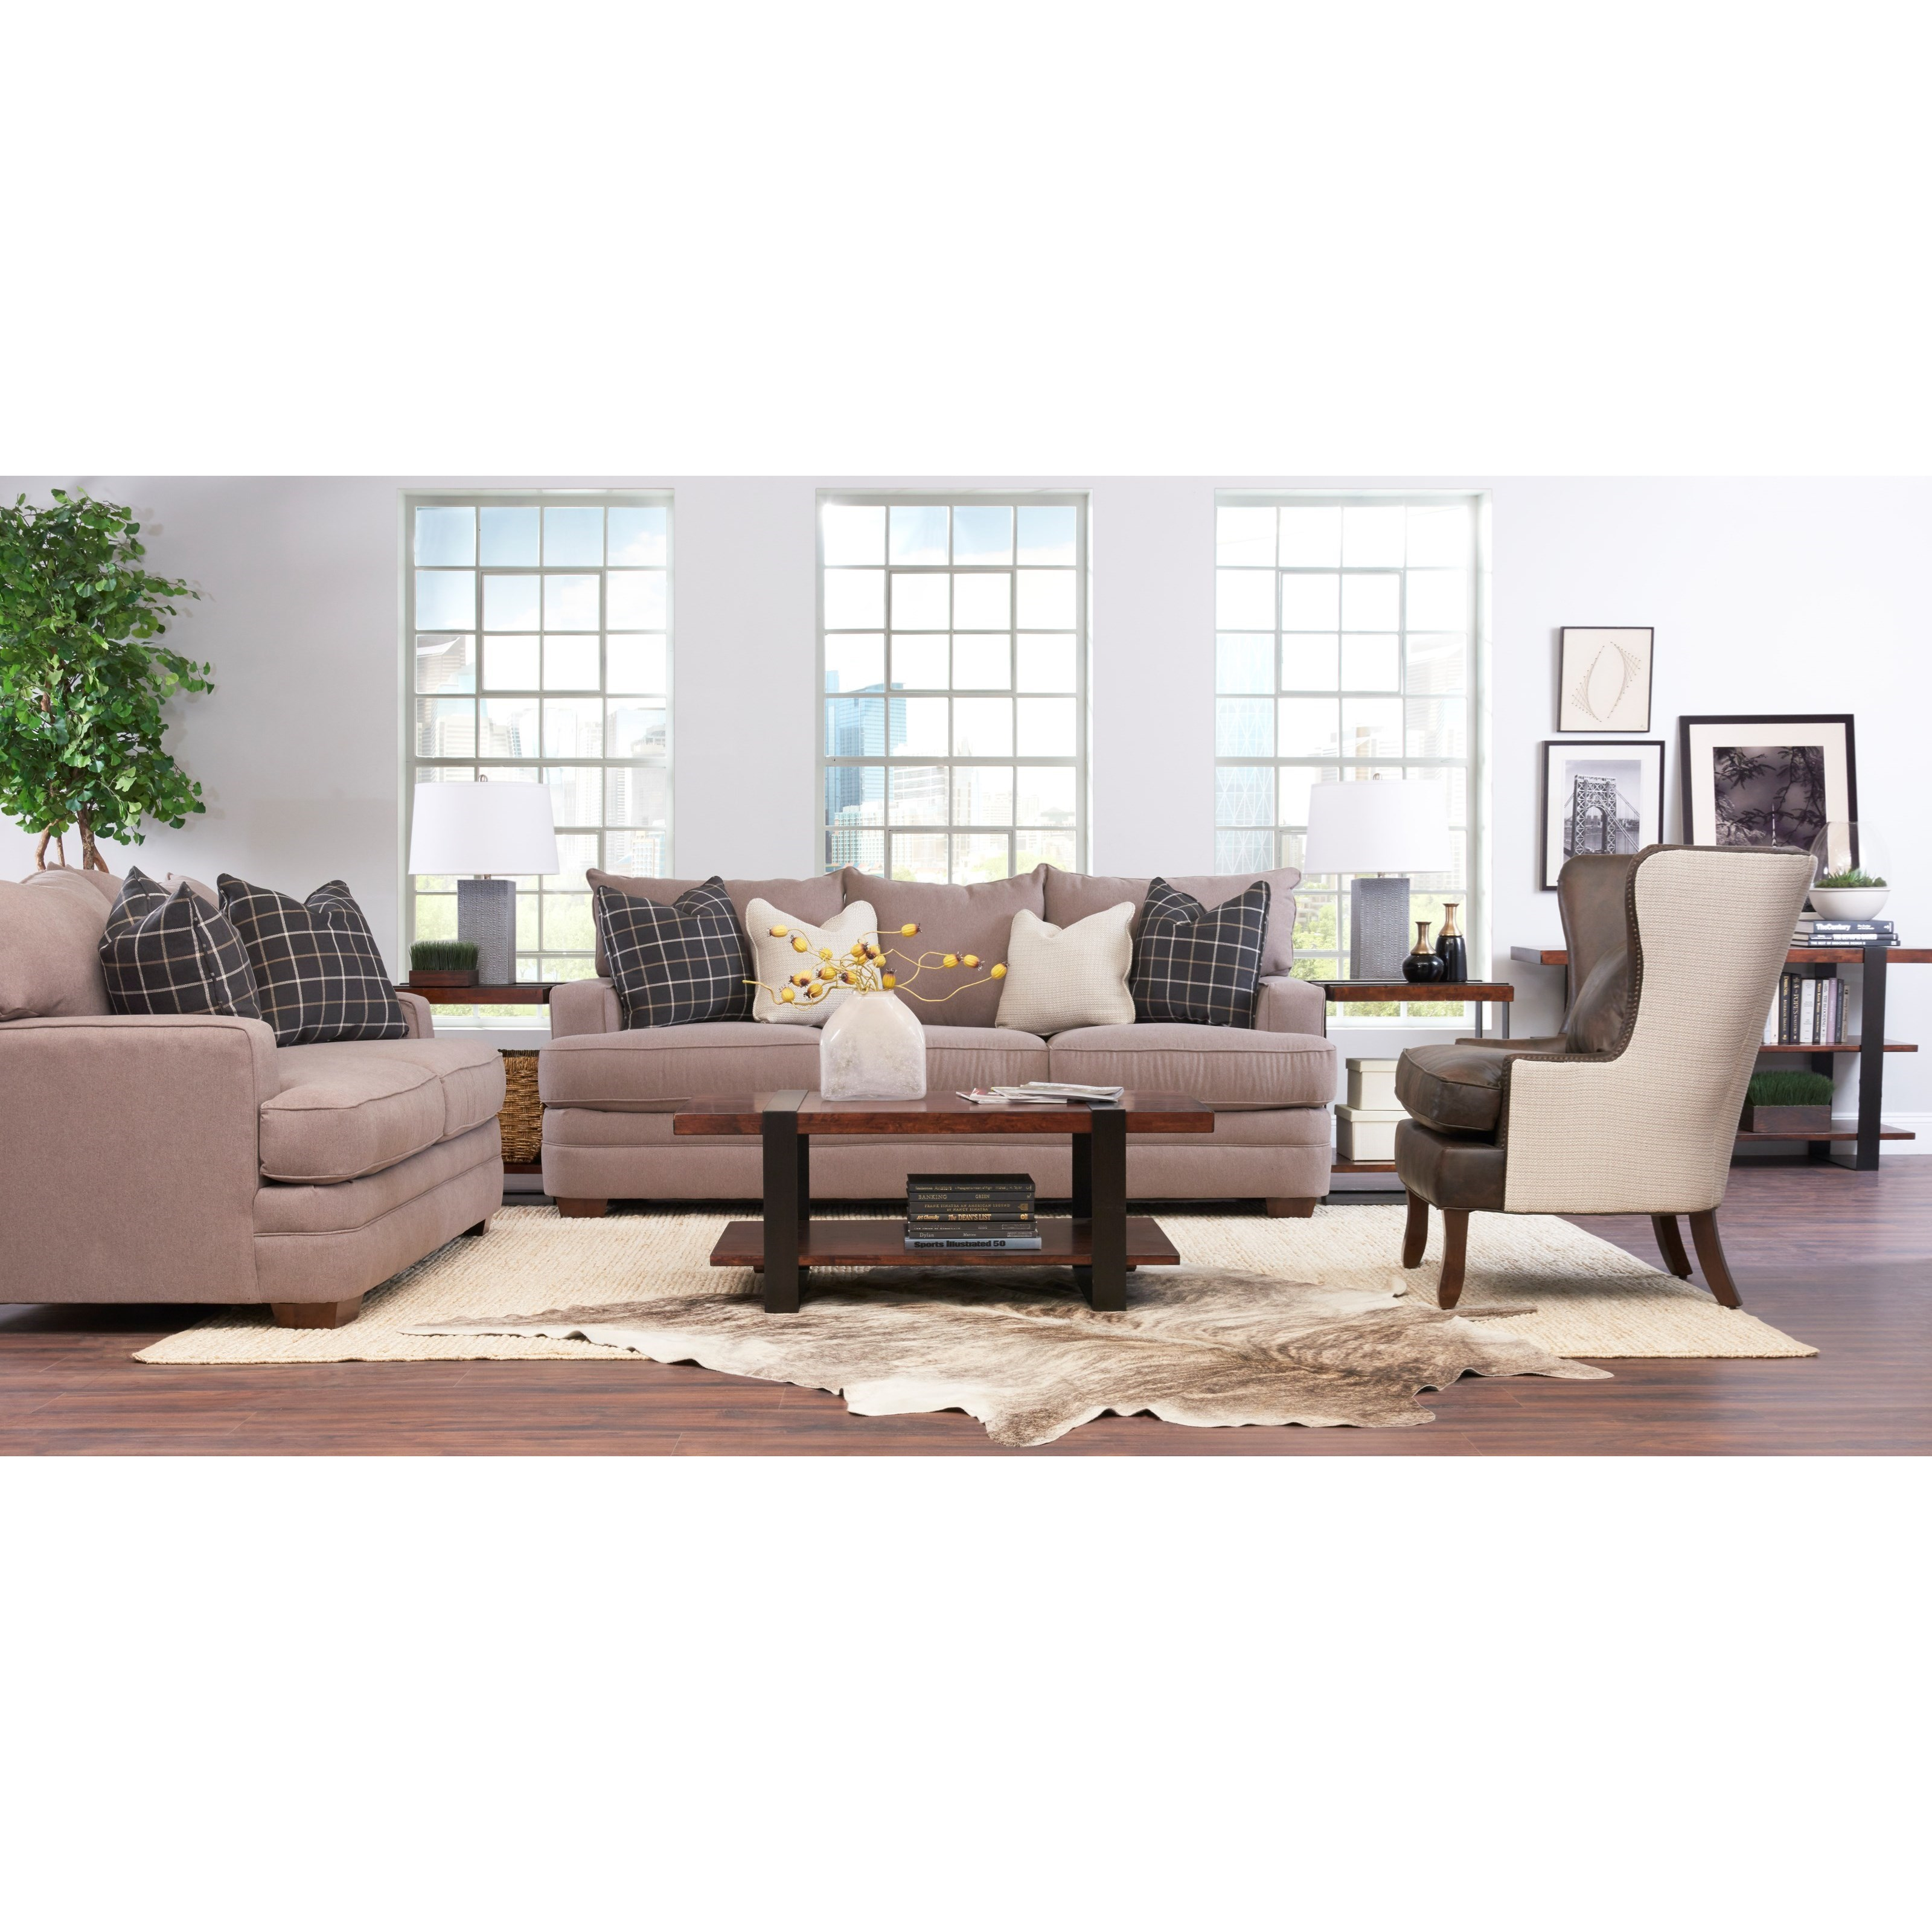 Chadwick Living Room Group by Klaussner at Suburban Furniture